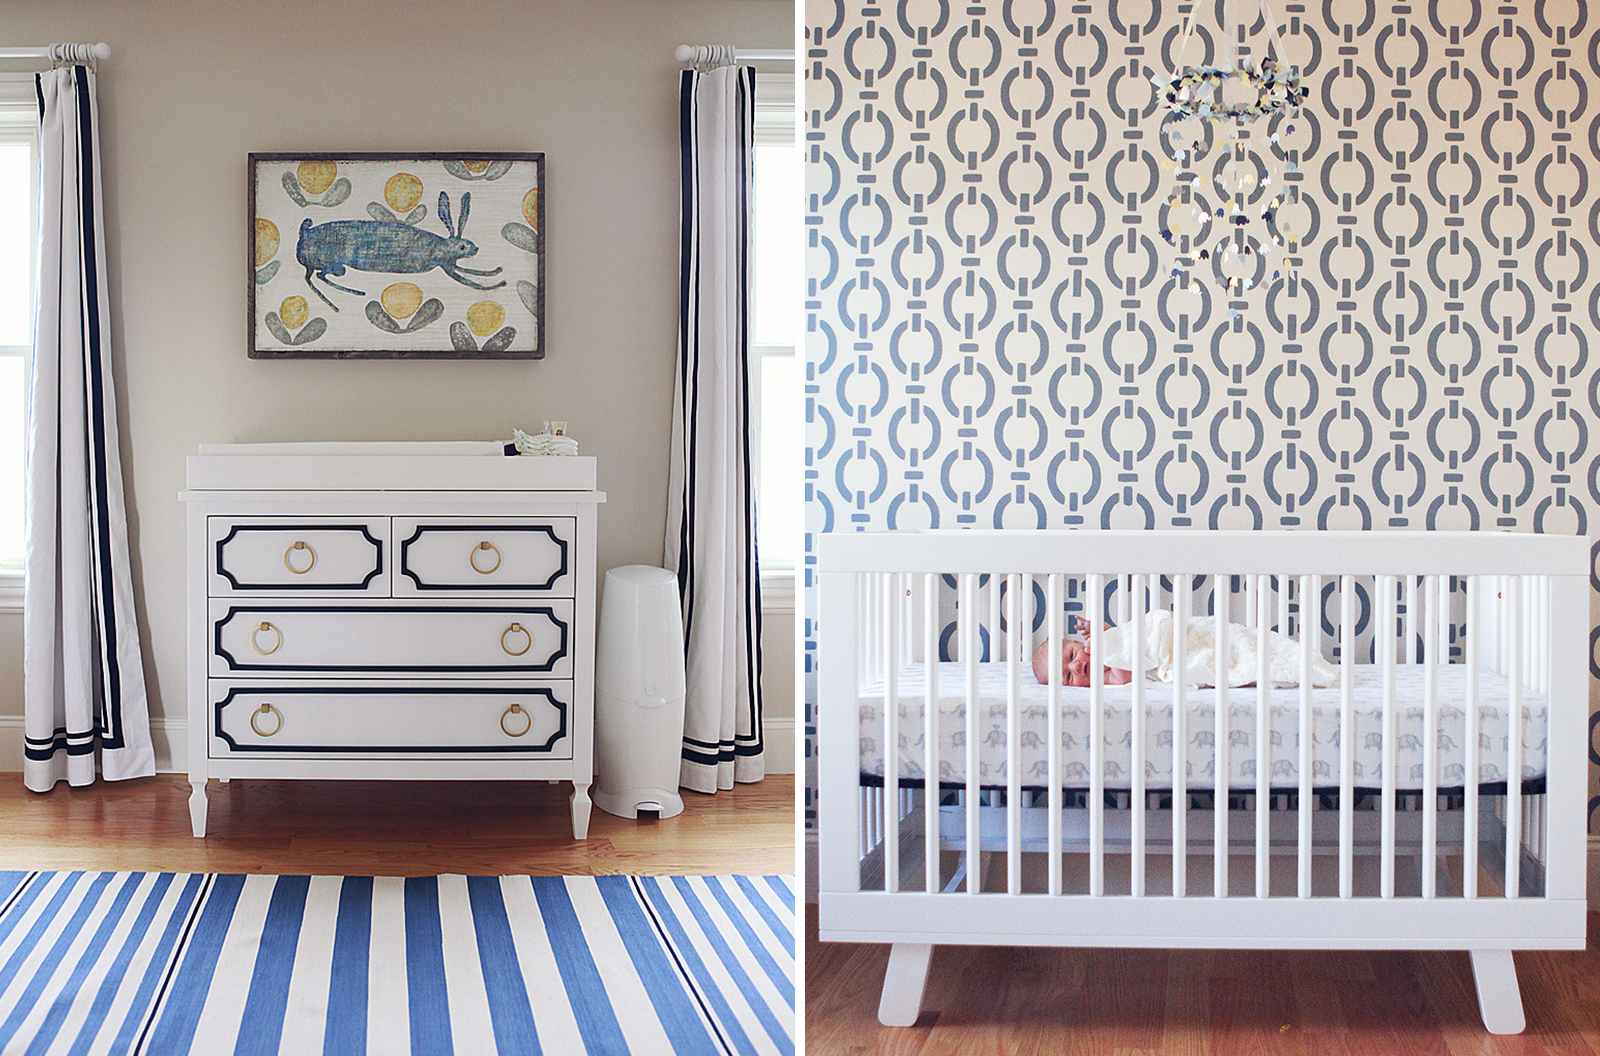 Mandarina Studio :: Boston interior design contemporary bold pattern nursery